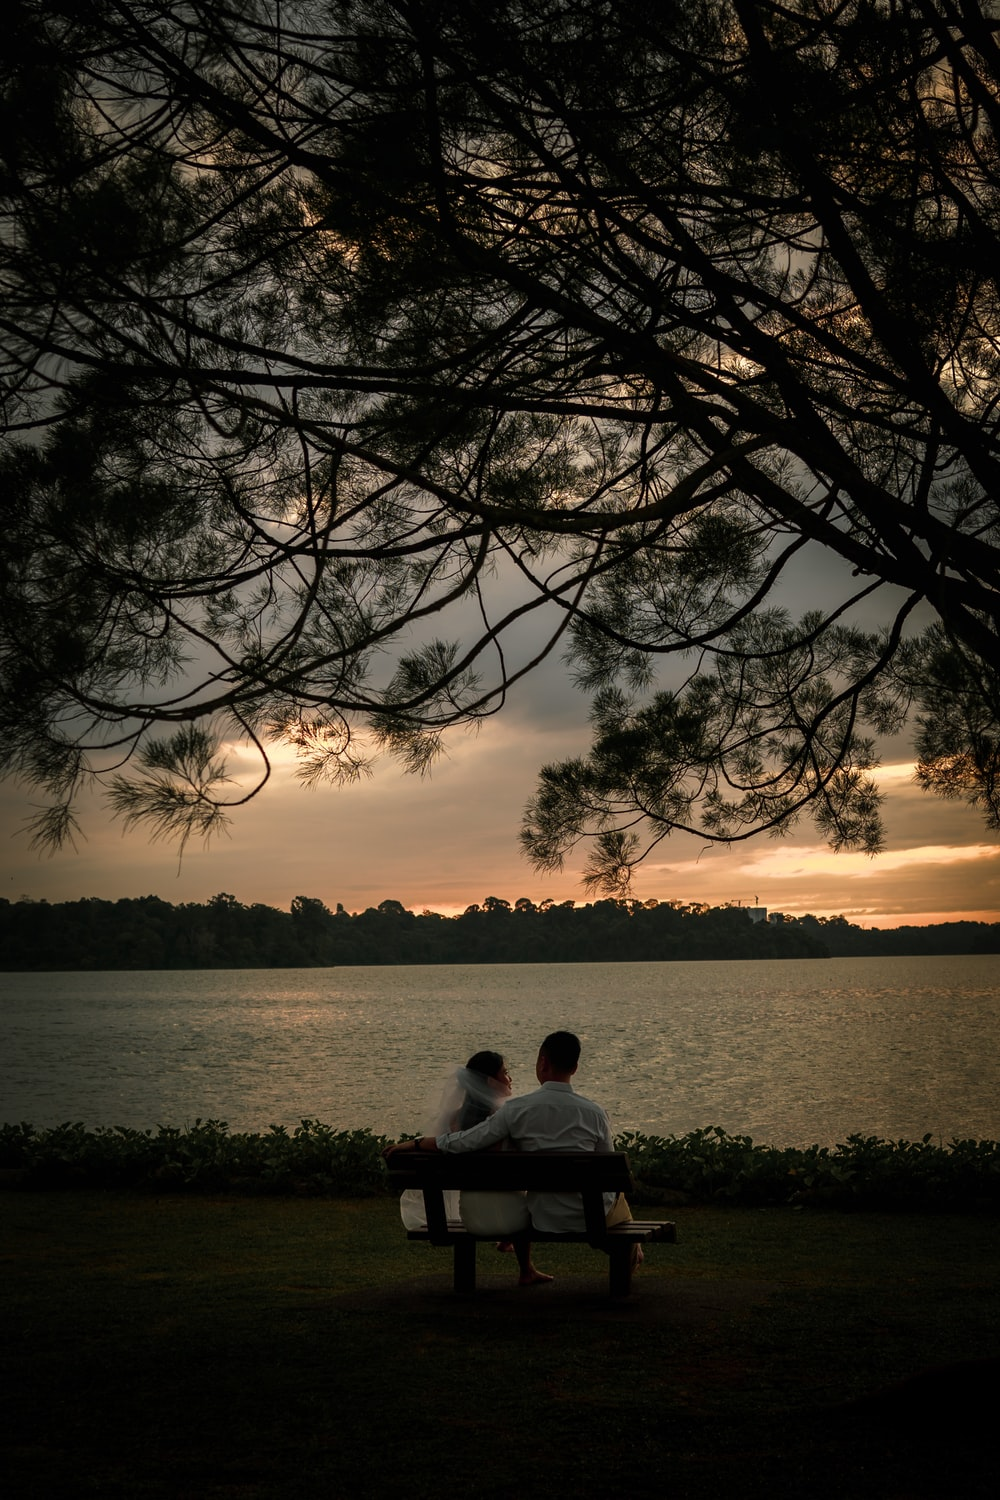 man sitting on bench near body of water during sunset